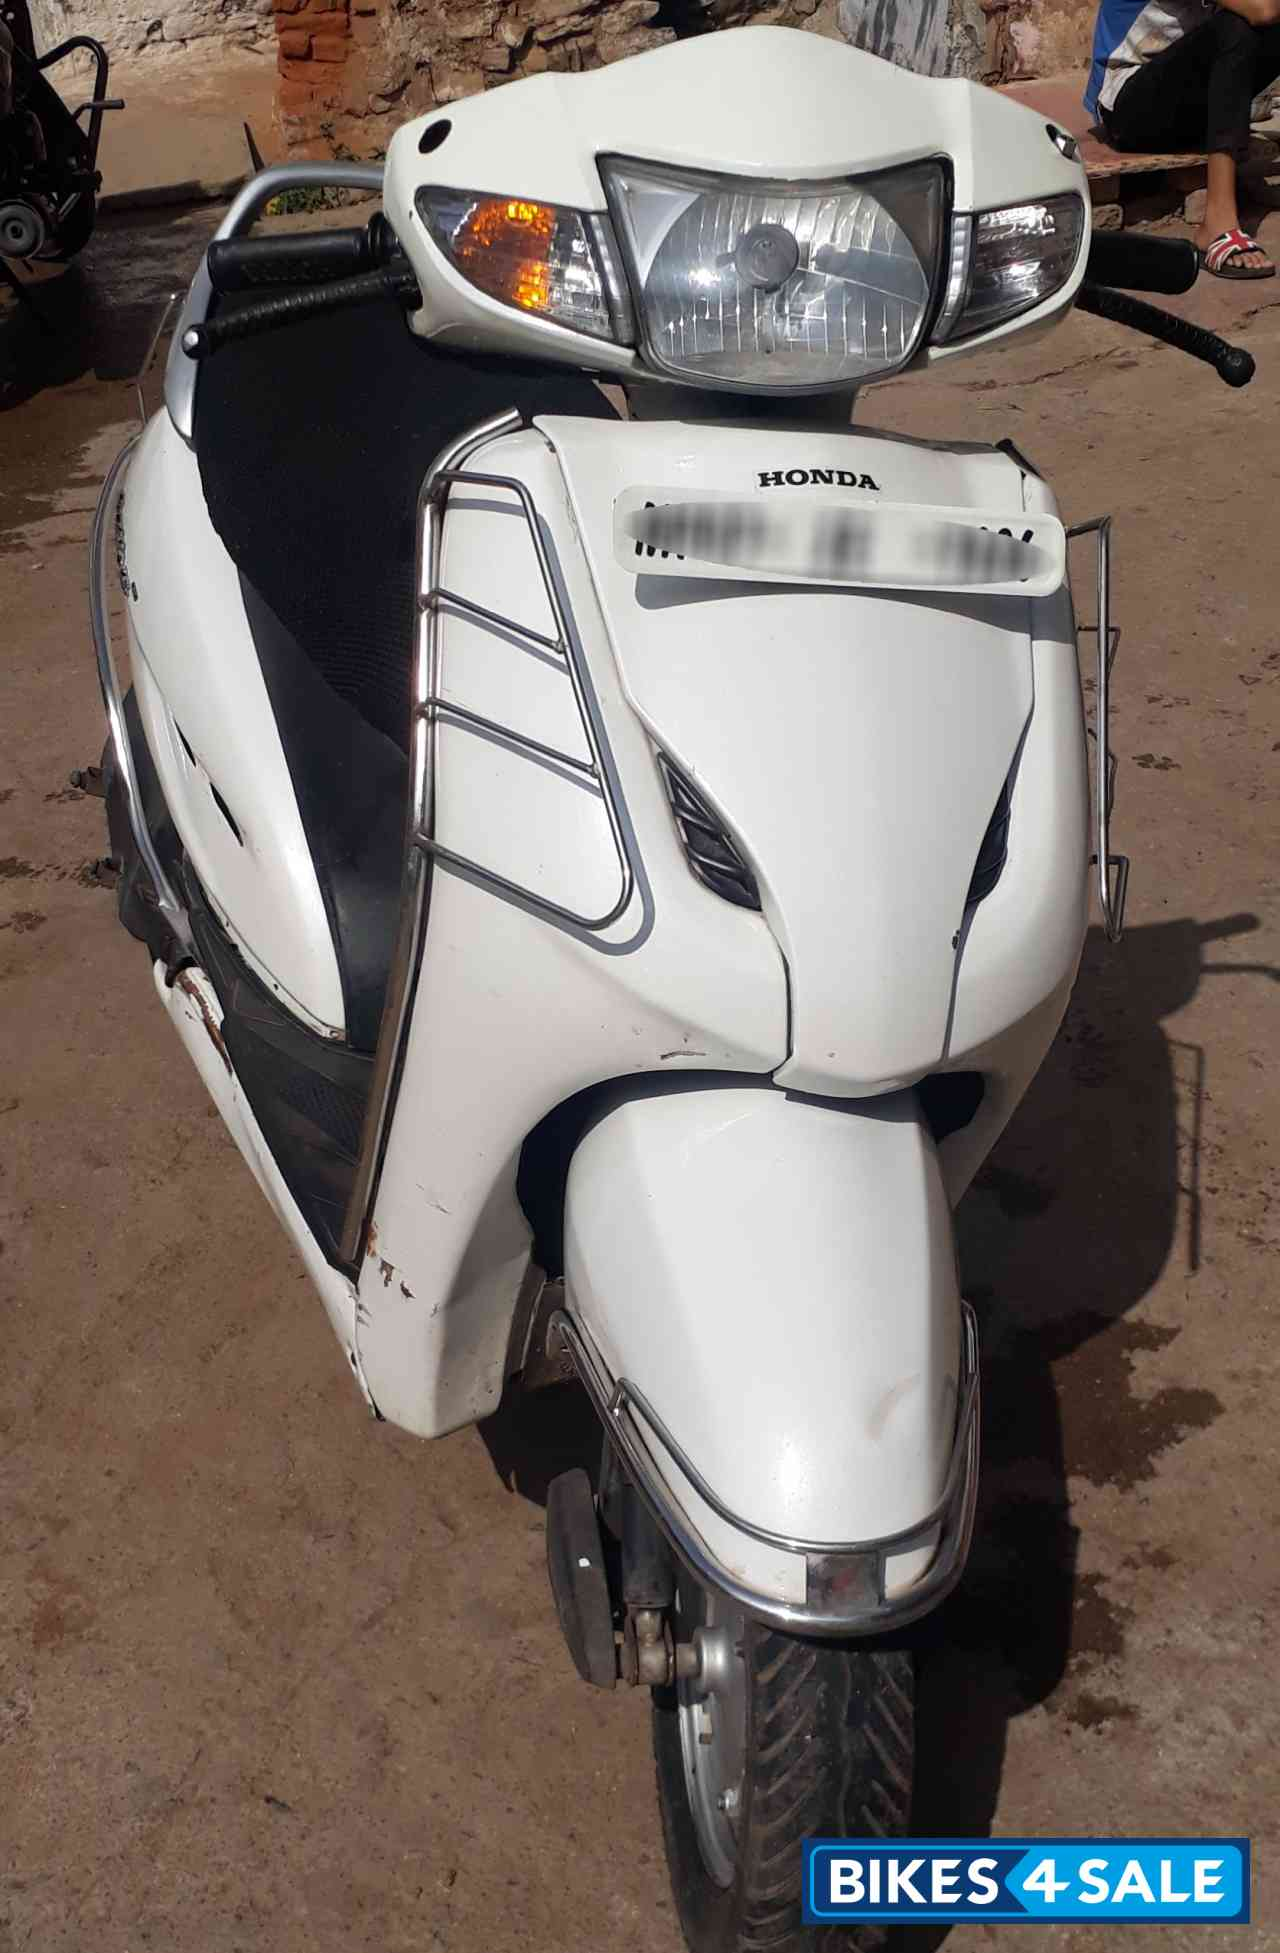 Used 2015 Model Honda Activa 3g For Sale In Gwalior Id 207519